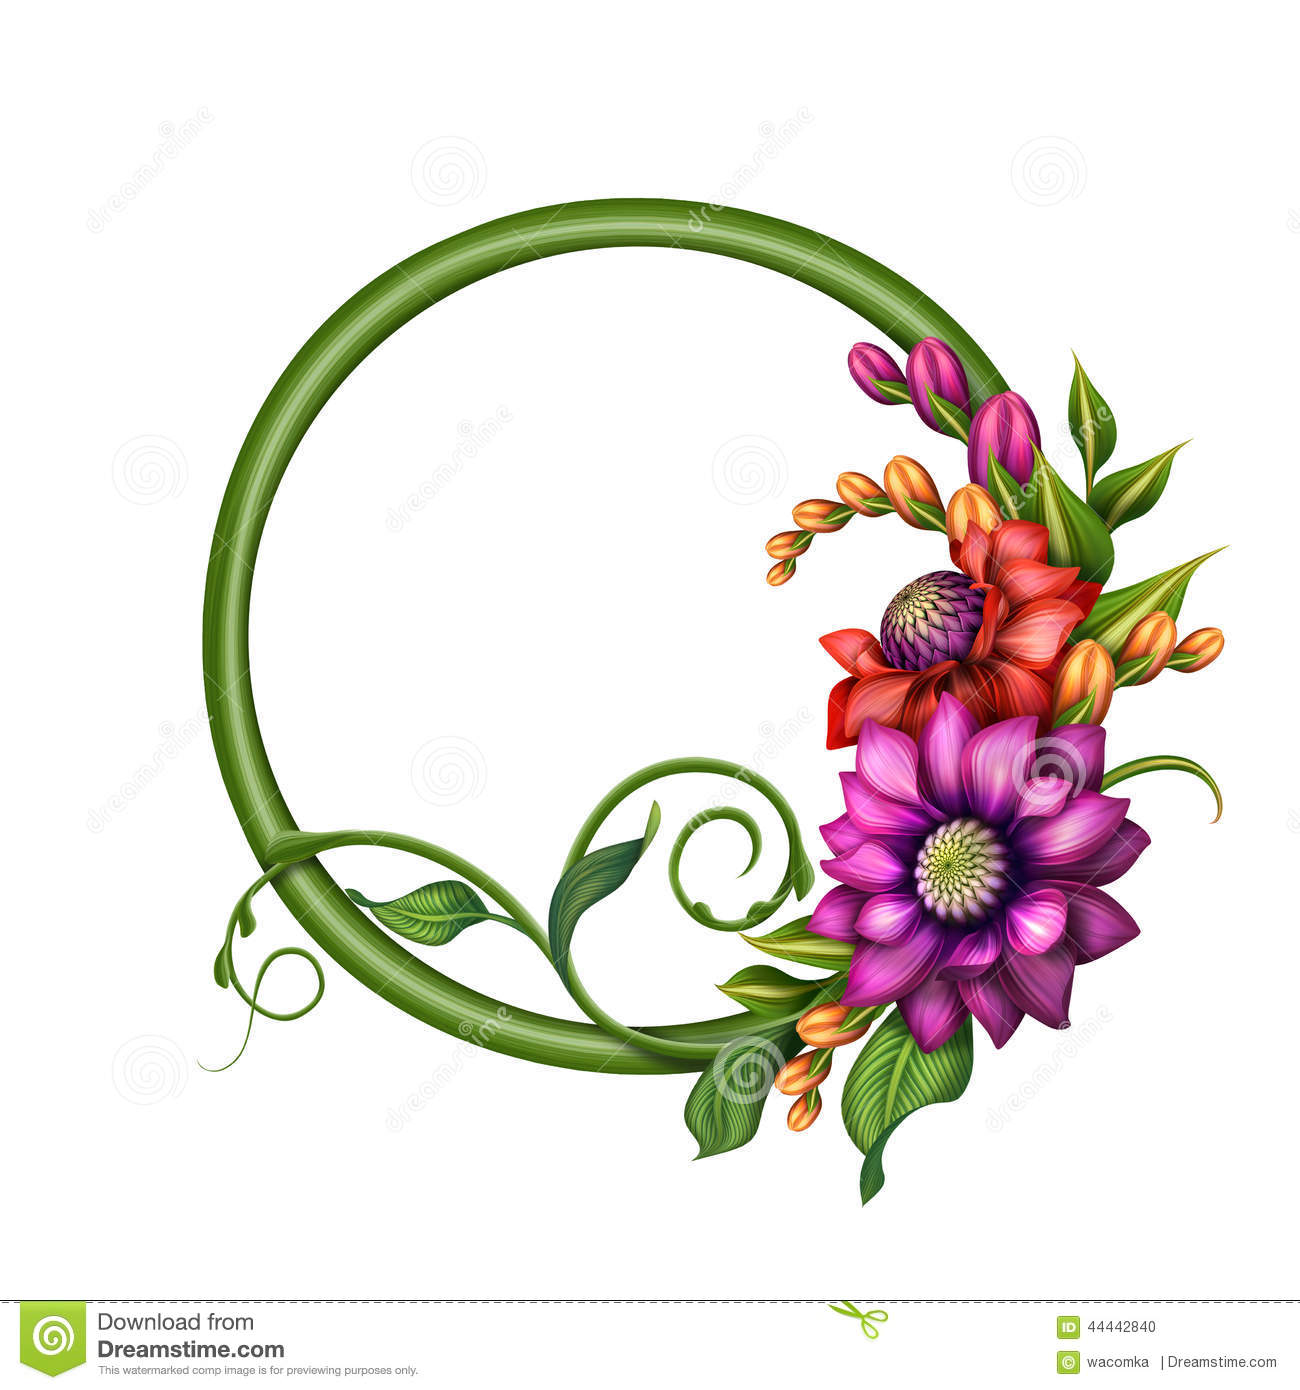 assorted colorful autumn flowers clip art round banner frame rh dreamstime com floral clip art designs floral clip art designs